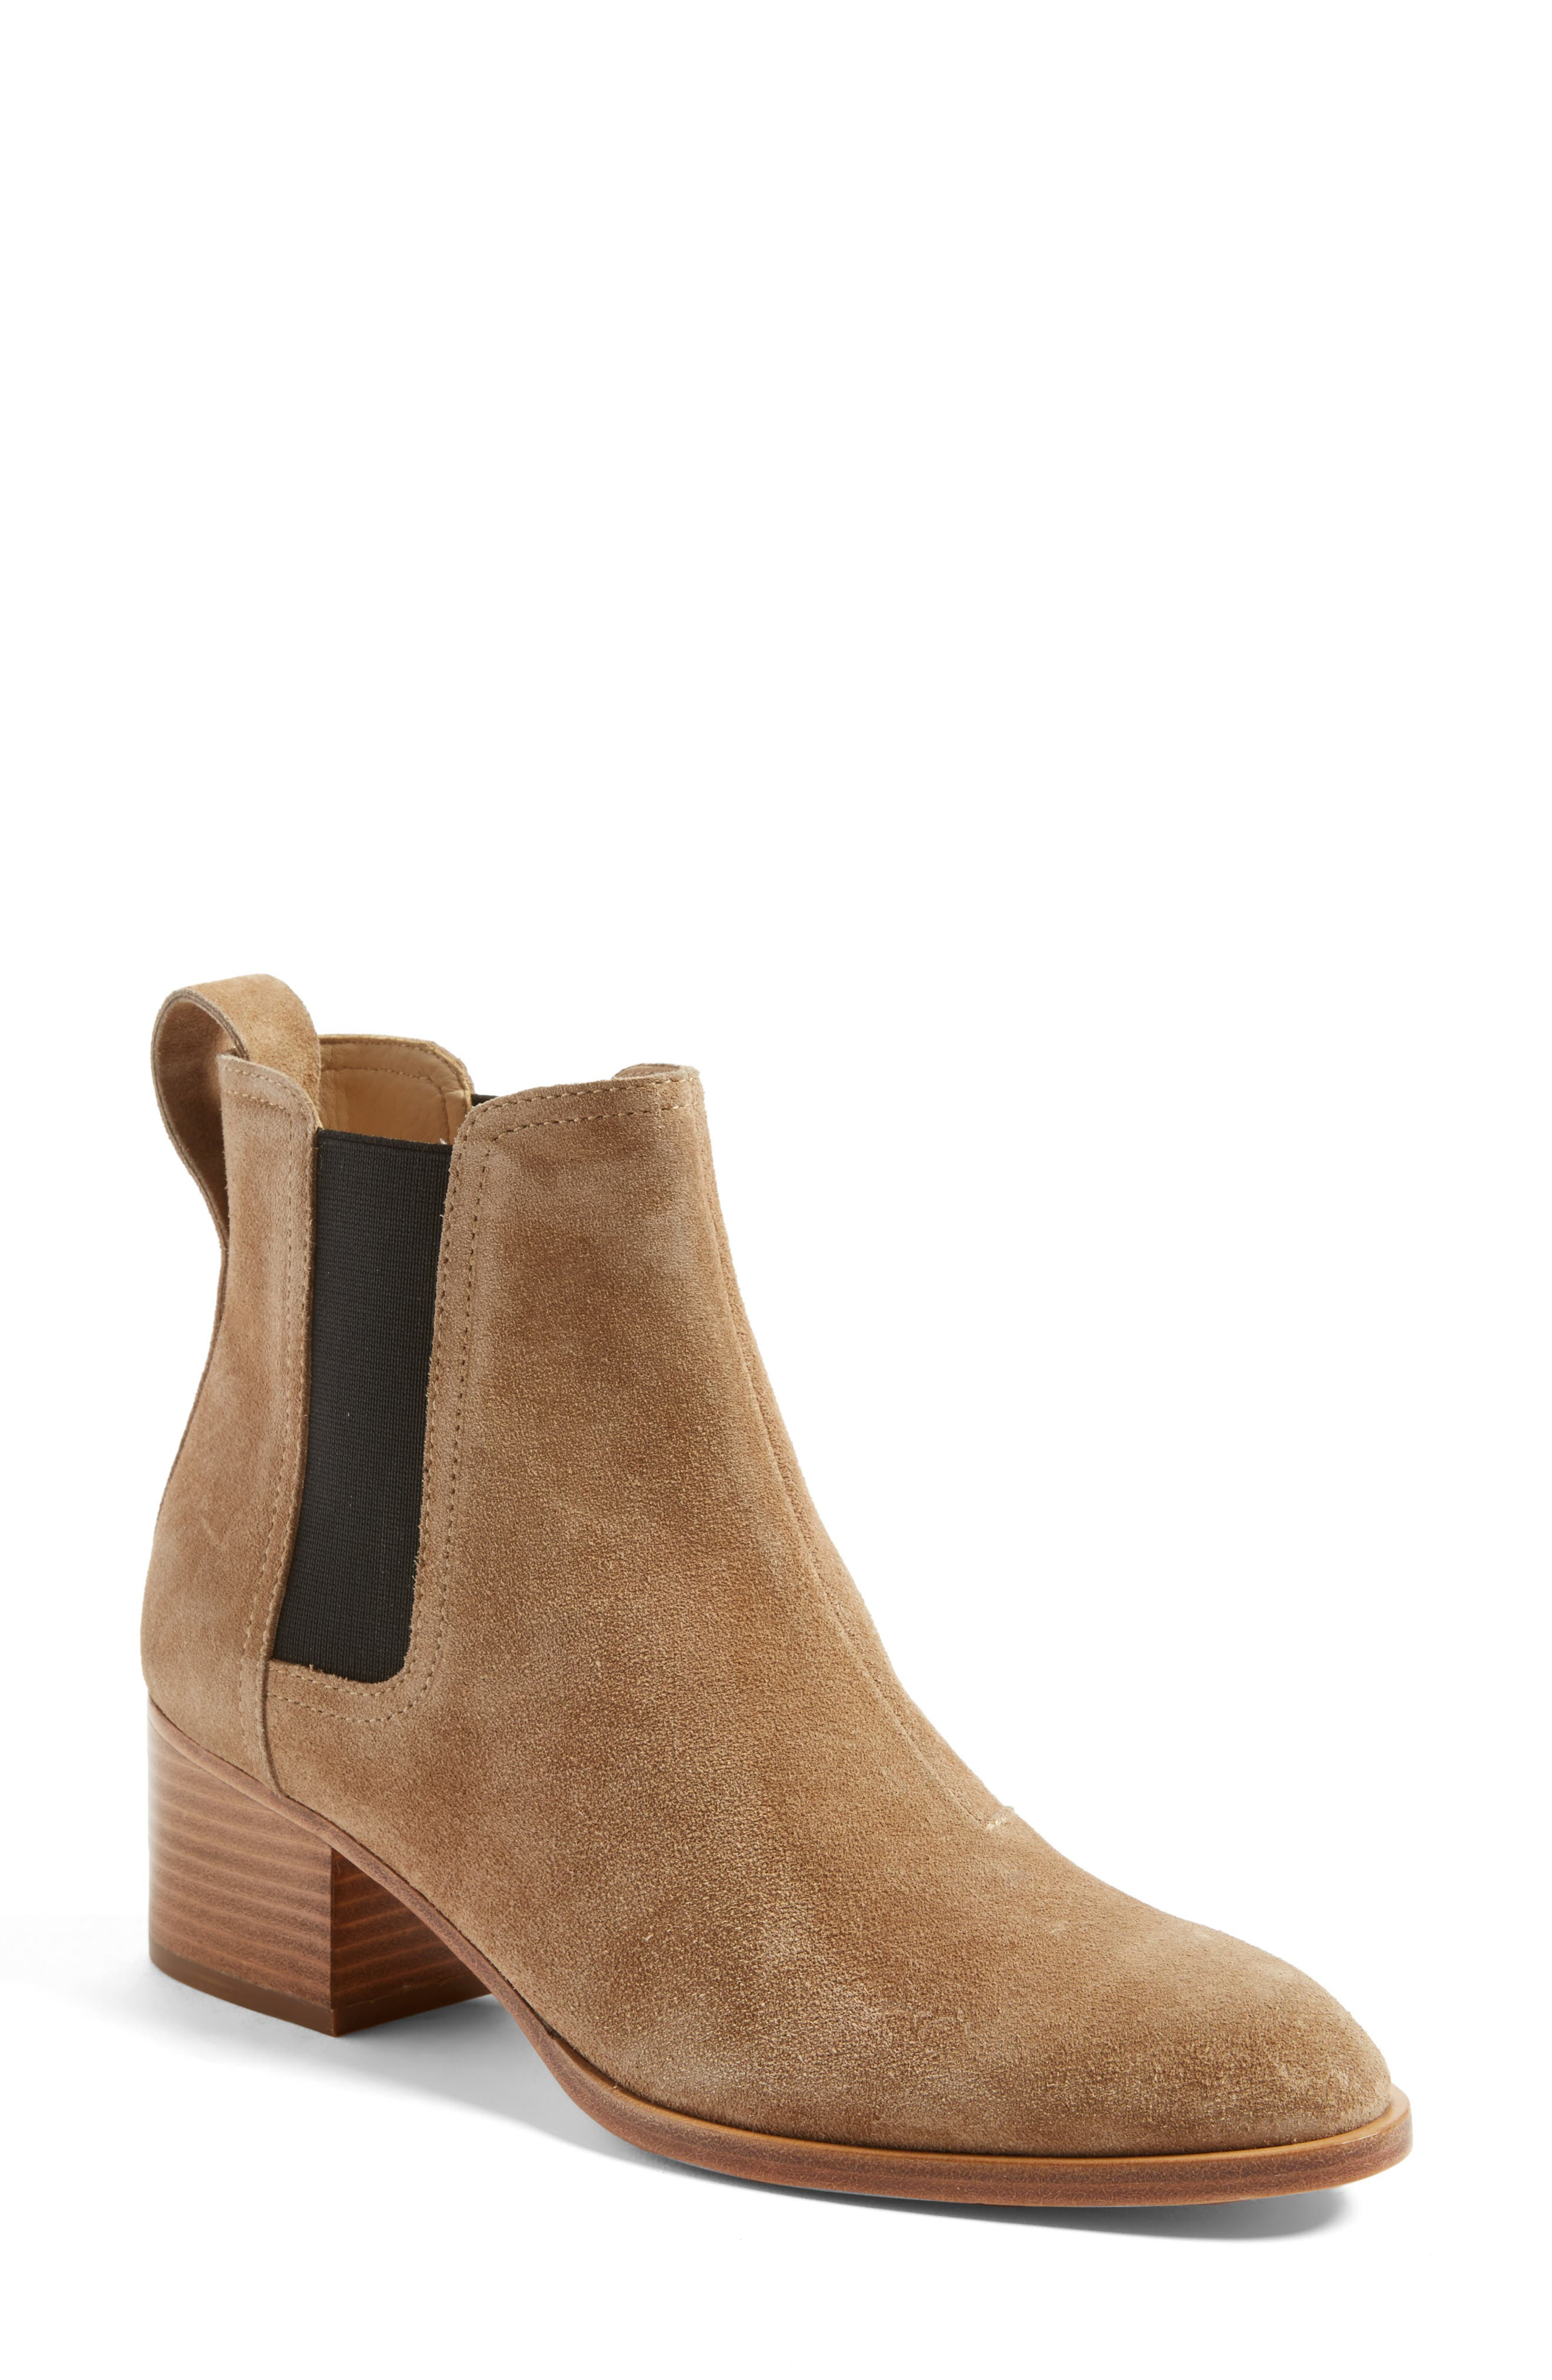 RAG & BONE 'Walker' Bootie, Main, color, CAMEL SUEDE